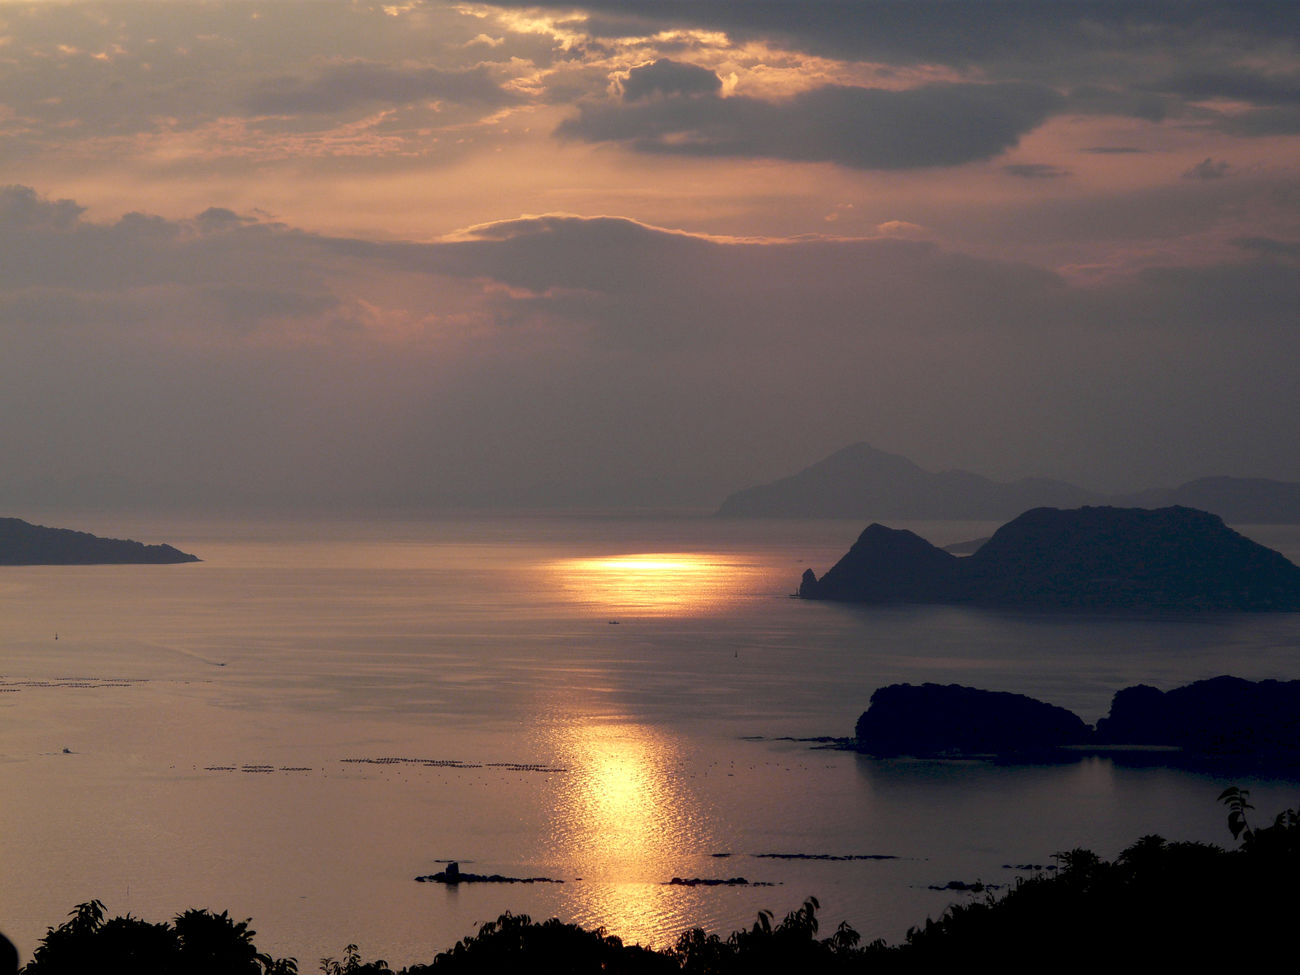 "Nagasaki Journey extra 18:07 Kujyukushima Islands View from Ishidake Obsertory, Sasebo City Nagasaki JAPAN September 11, 2010. Panasonic LUMIX DMC-FZ18 Opening sequence Islands Tom cruise ""Last Samurai"" Moviescene https://youtu.be/JkWzHZsx58k?t=16s Islands Japan Scenery Beautiful Nature Beautiful Sunset Close Up Nature Cloud - Sky Dramatic Sky Majestic Ocean View Sea And Sky Sea Scape Silhouette Sunset Silhouettes Walking Around The City  Water Reflections 佐世保 石岳展望台"